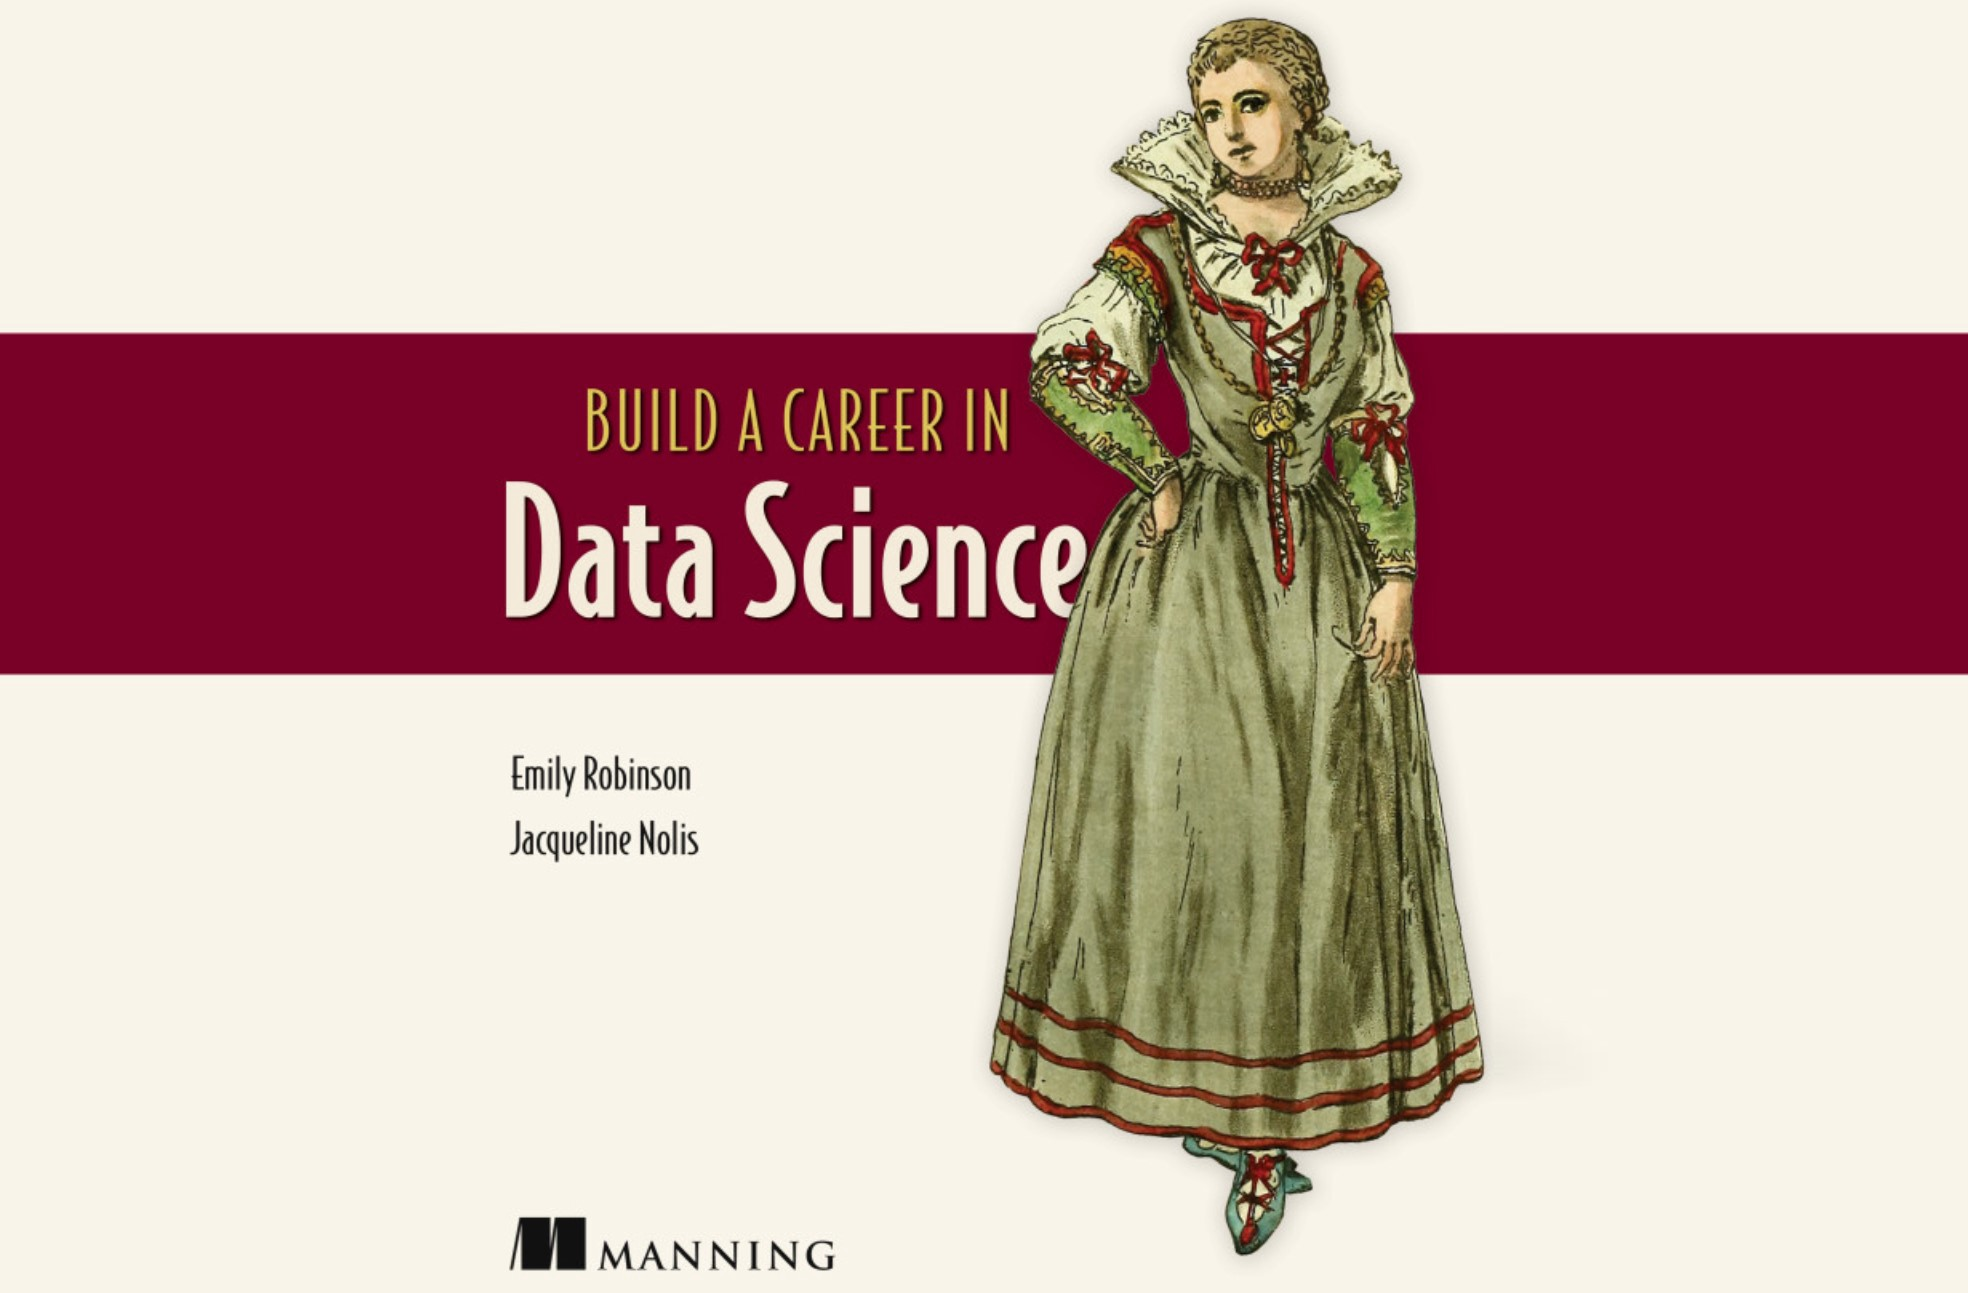 Build a Career in Data Science book cover